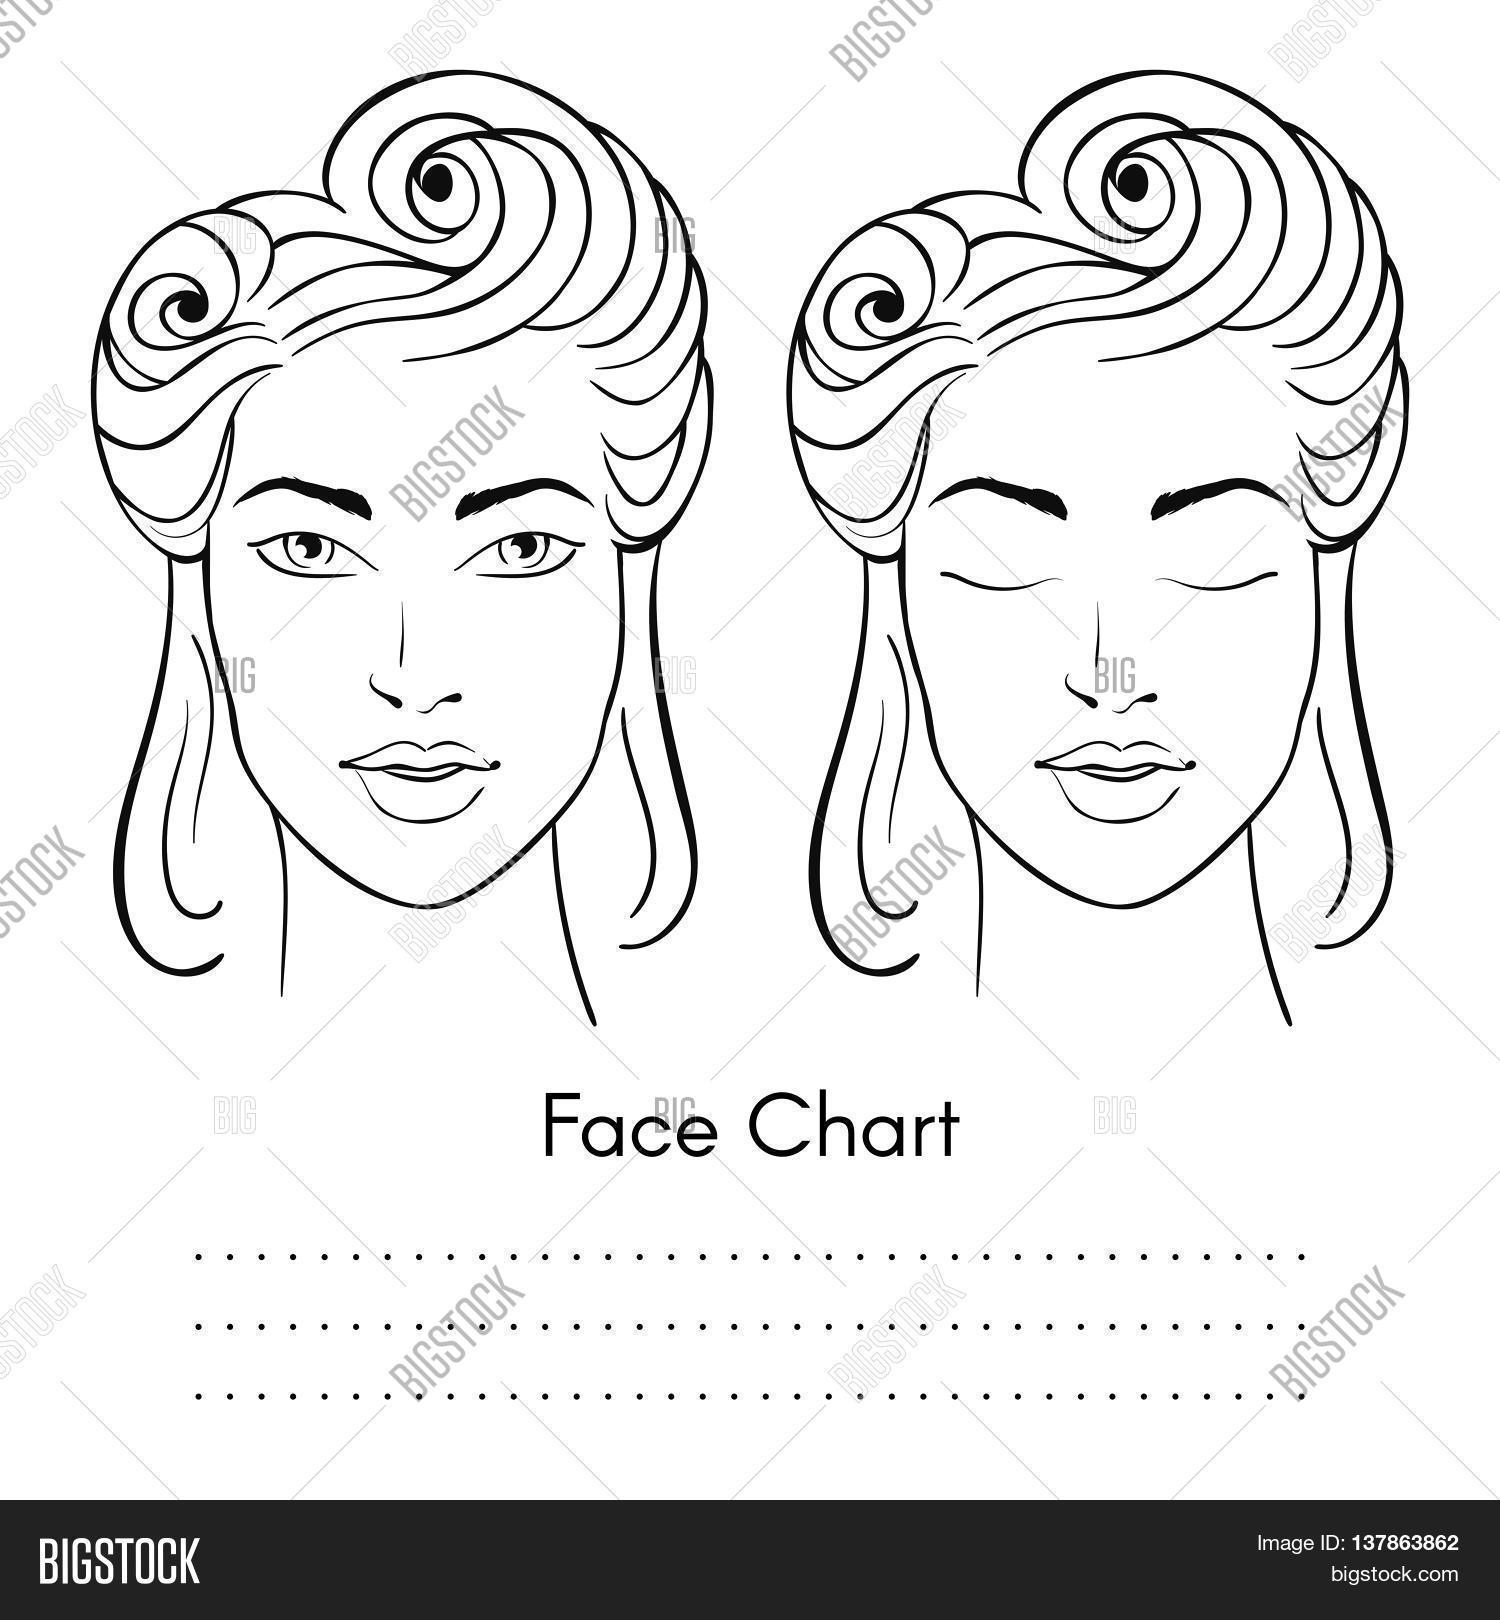 facial expressions chart drawing at getdrawings com free for